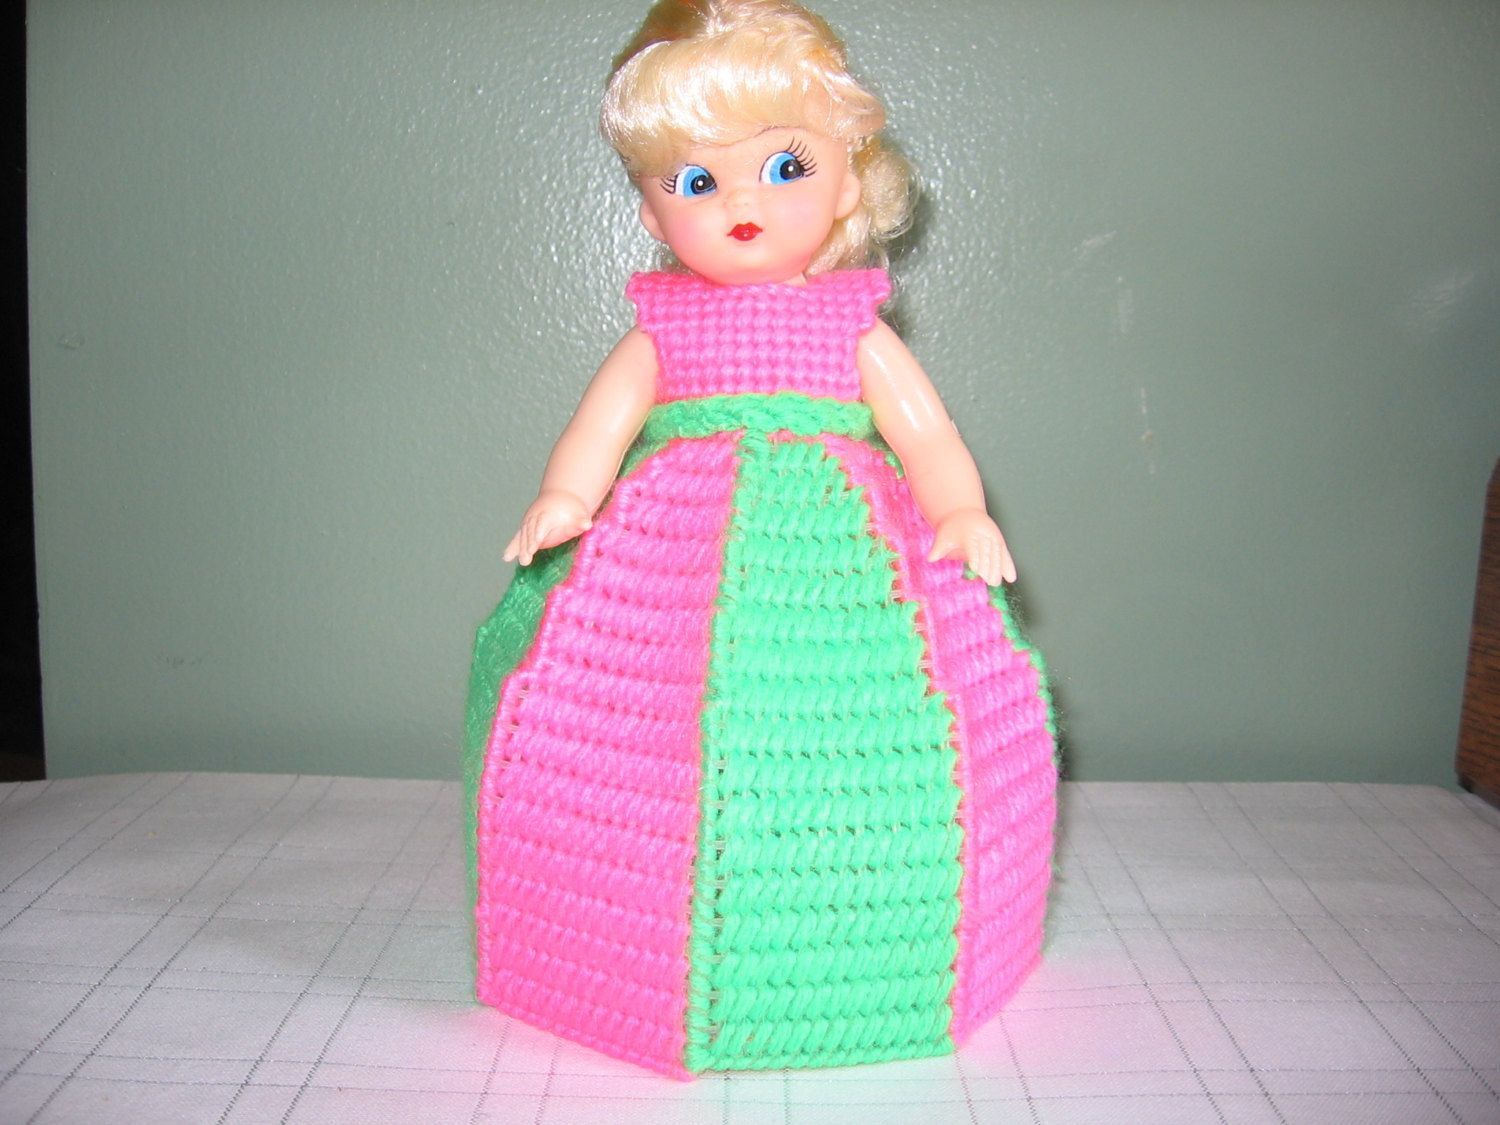 Hot Pink/Lime Green Collectible Doll - use for decoration or Air Freshner!! - My Best Seller!!! by CreationsbyAMJ on Etsy #airfreshnerdolls